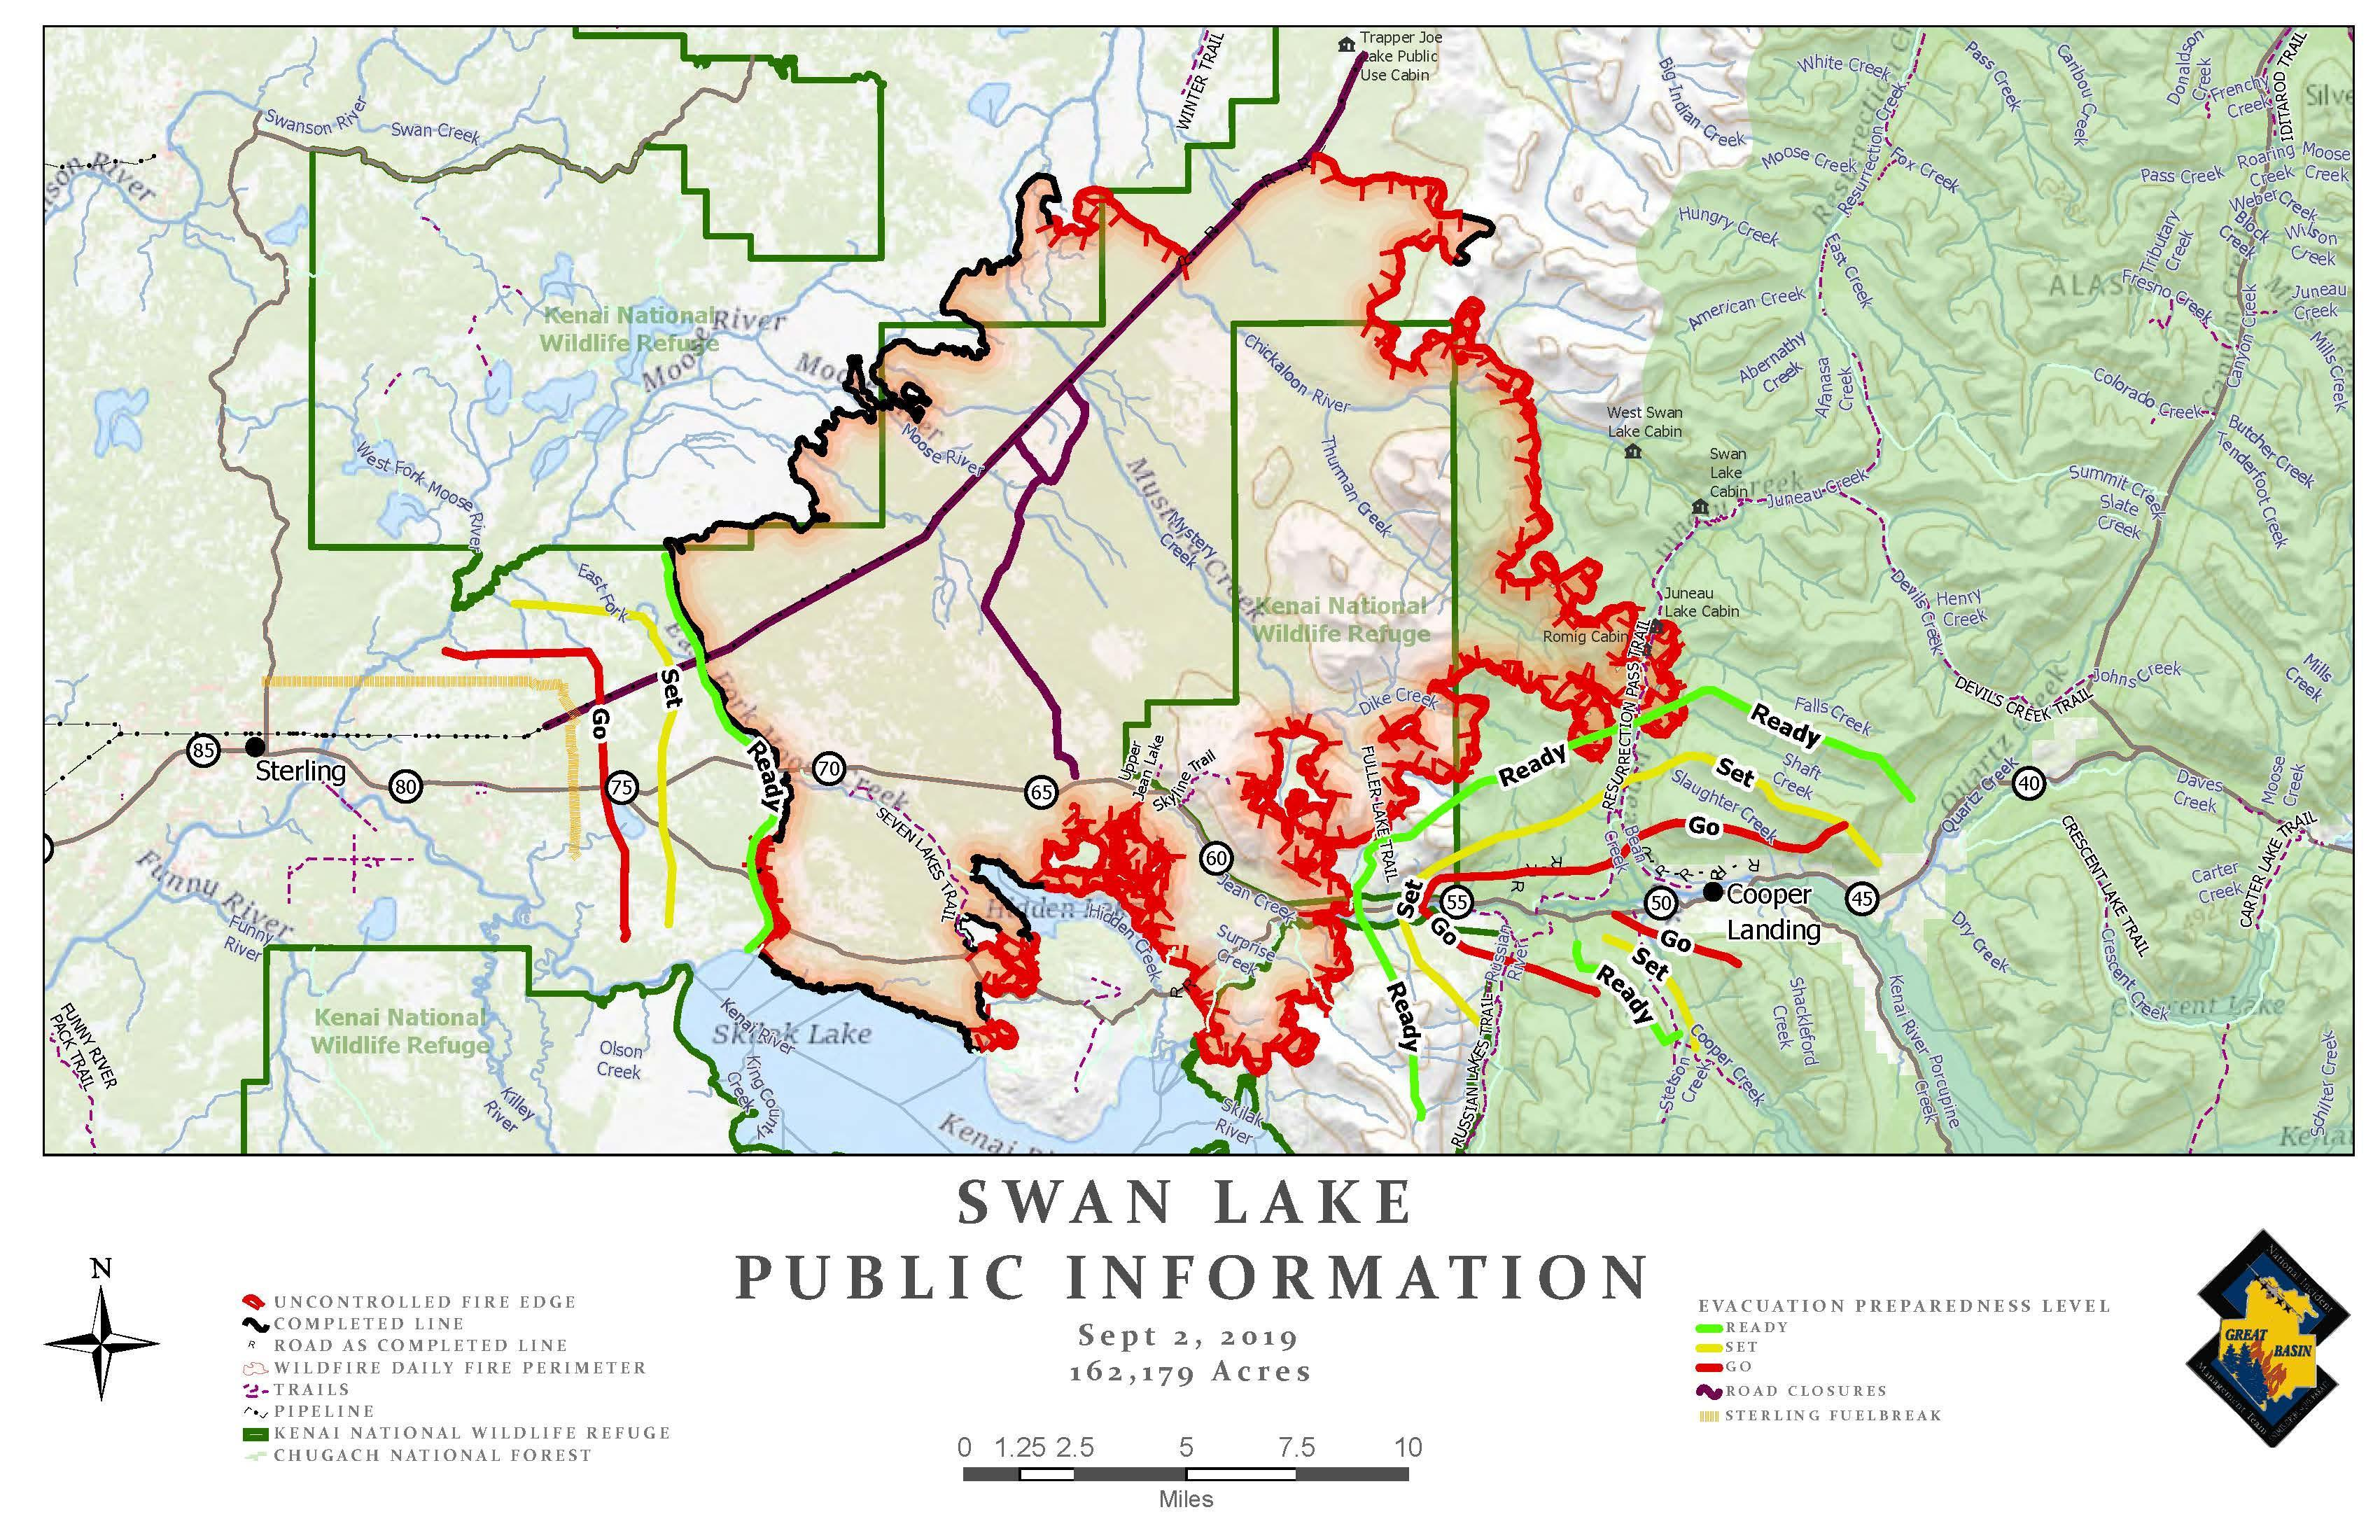 Swan Lake Public Information Map - Sept. 2